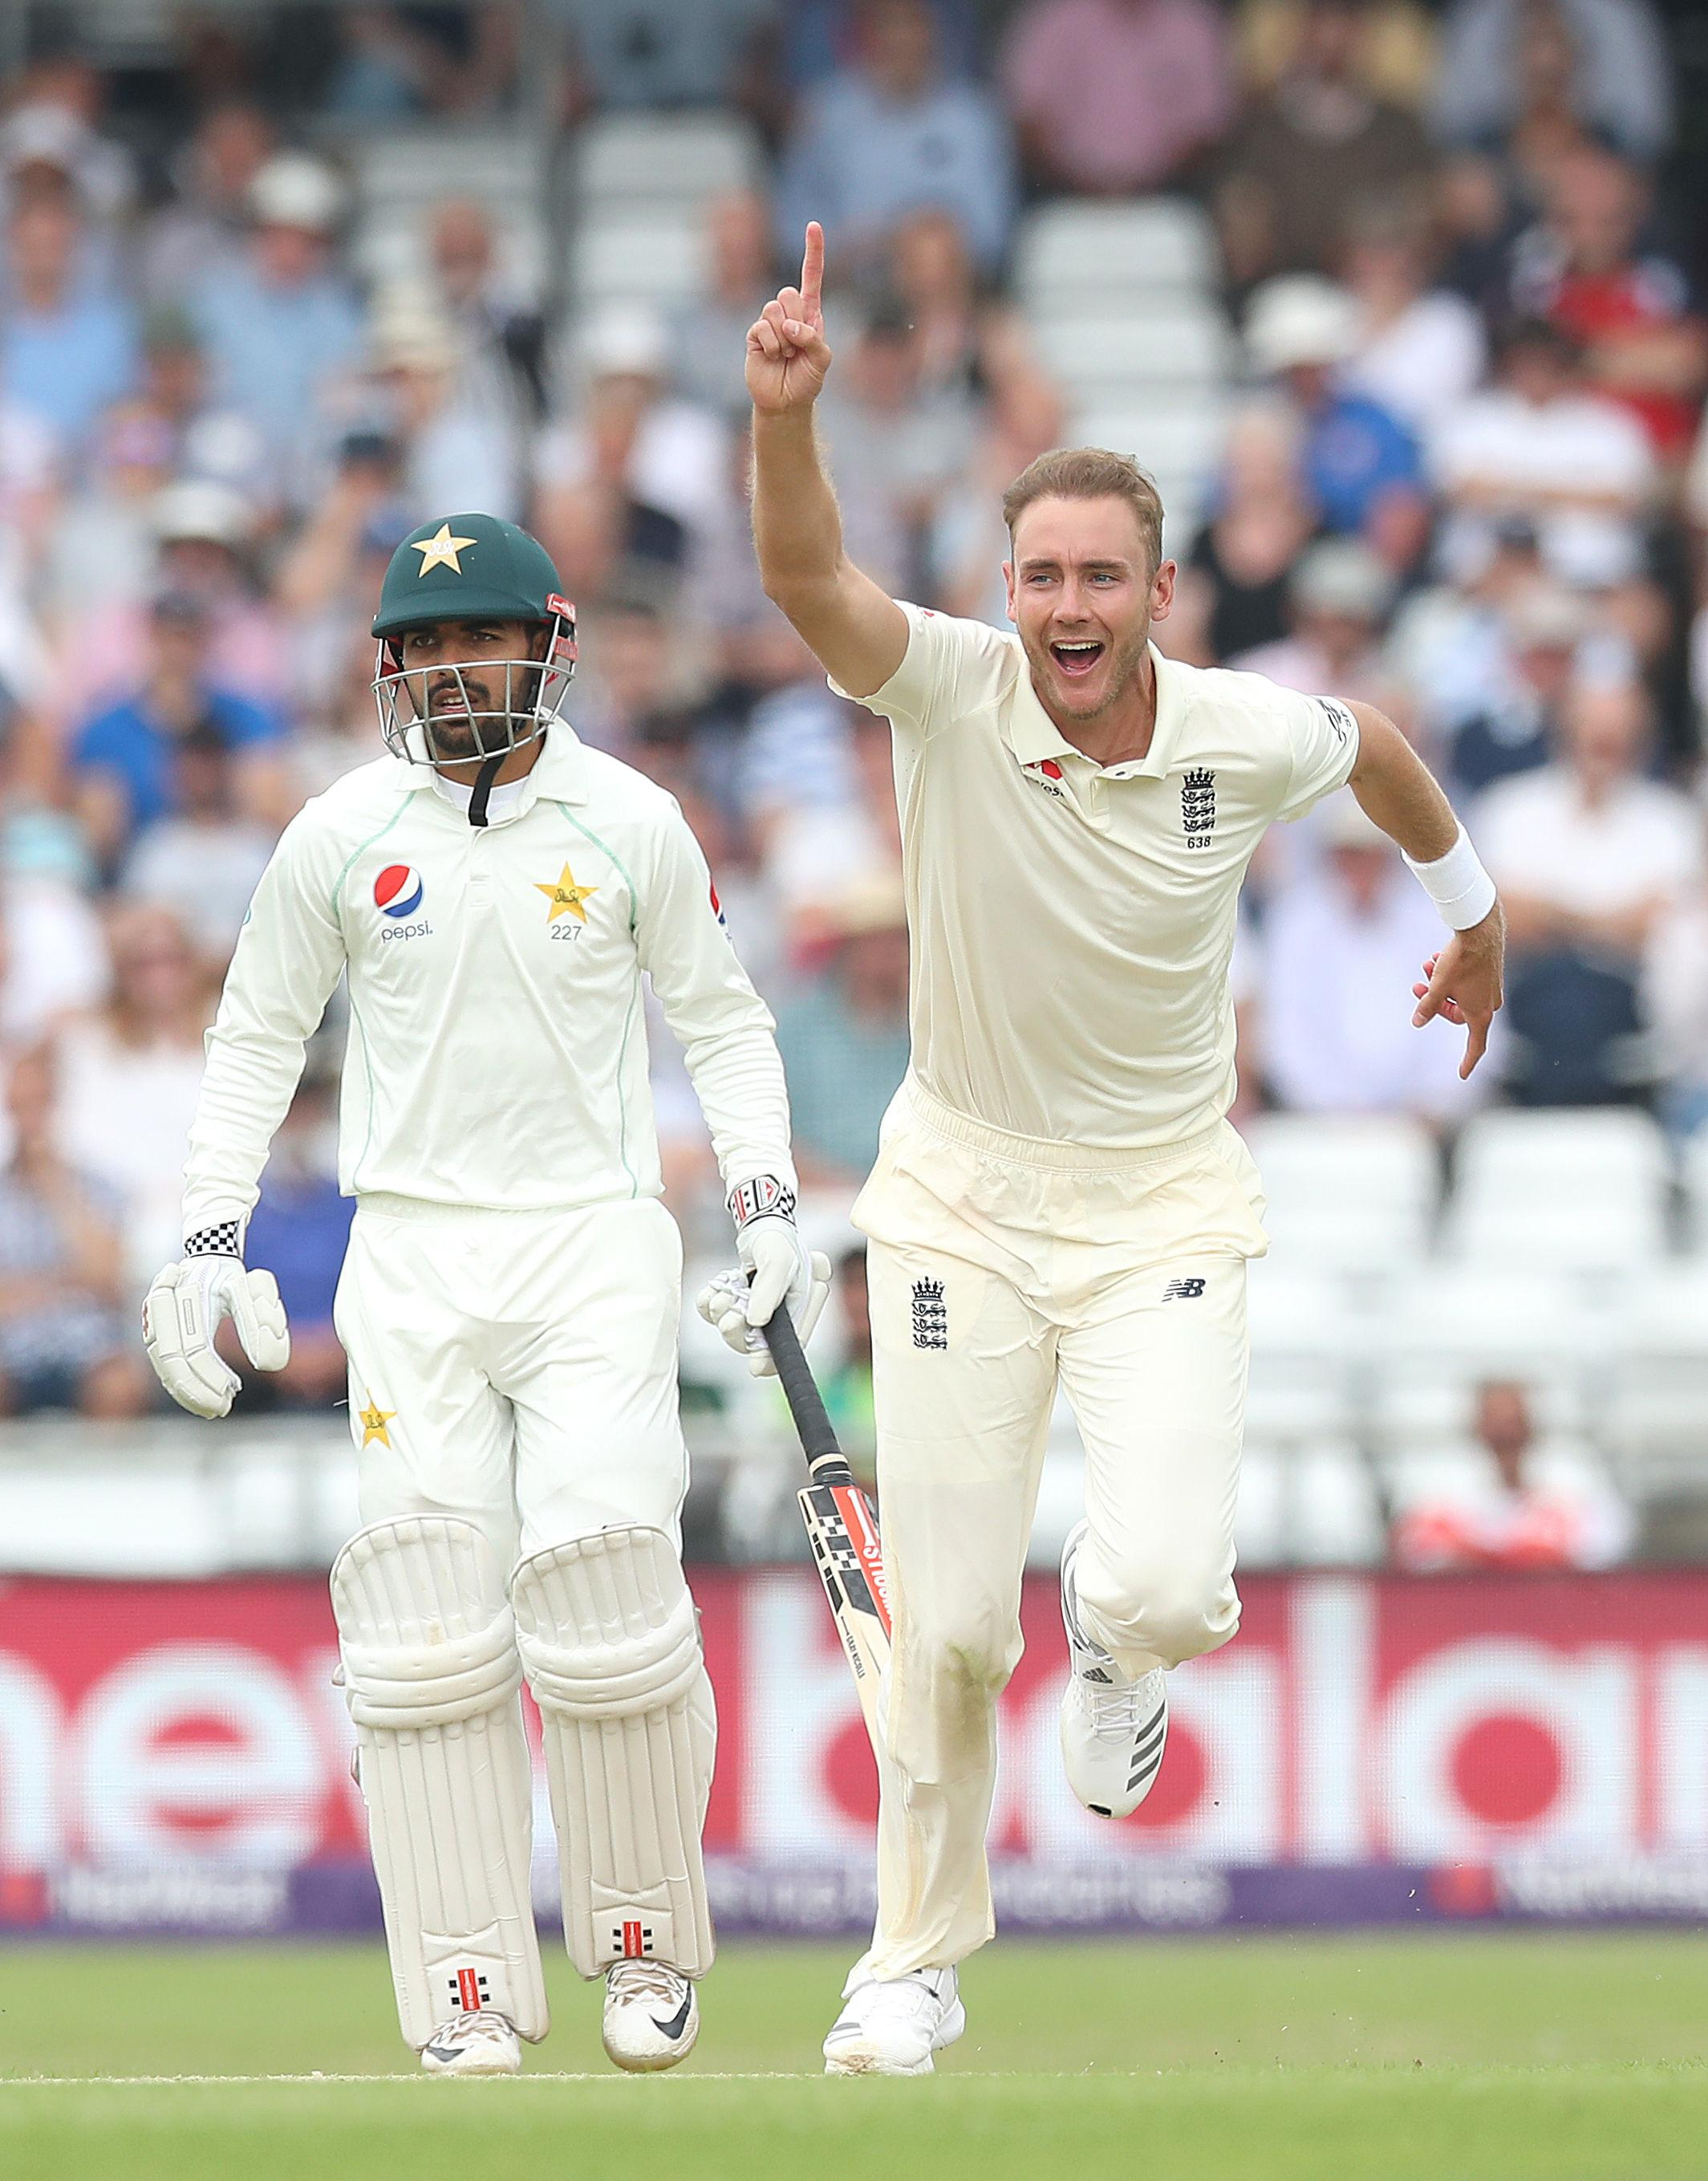 Michael Vaughan floated the idea that Stuart Broad should be dropped